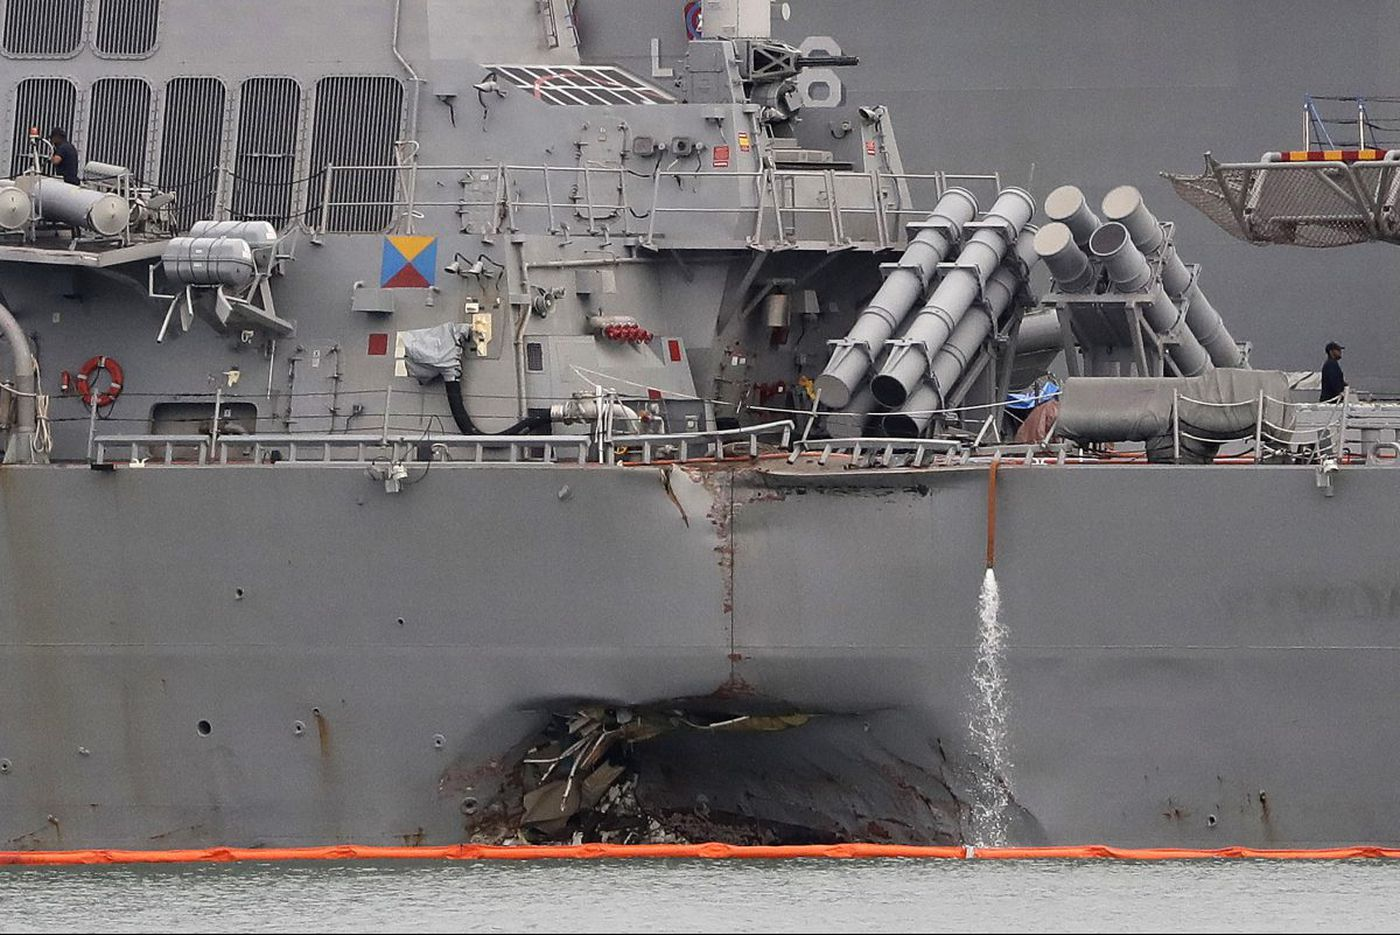 Former Navy officer: Cyber-threats, GPS spoofing possible causes in USS John S. McCain collision | Commentary